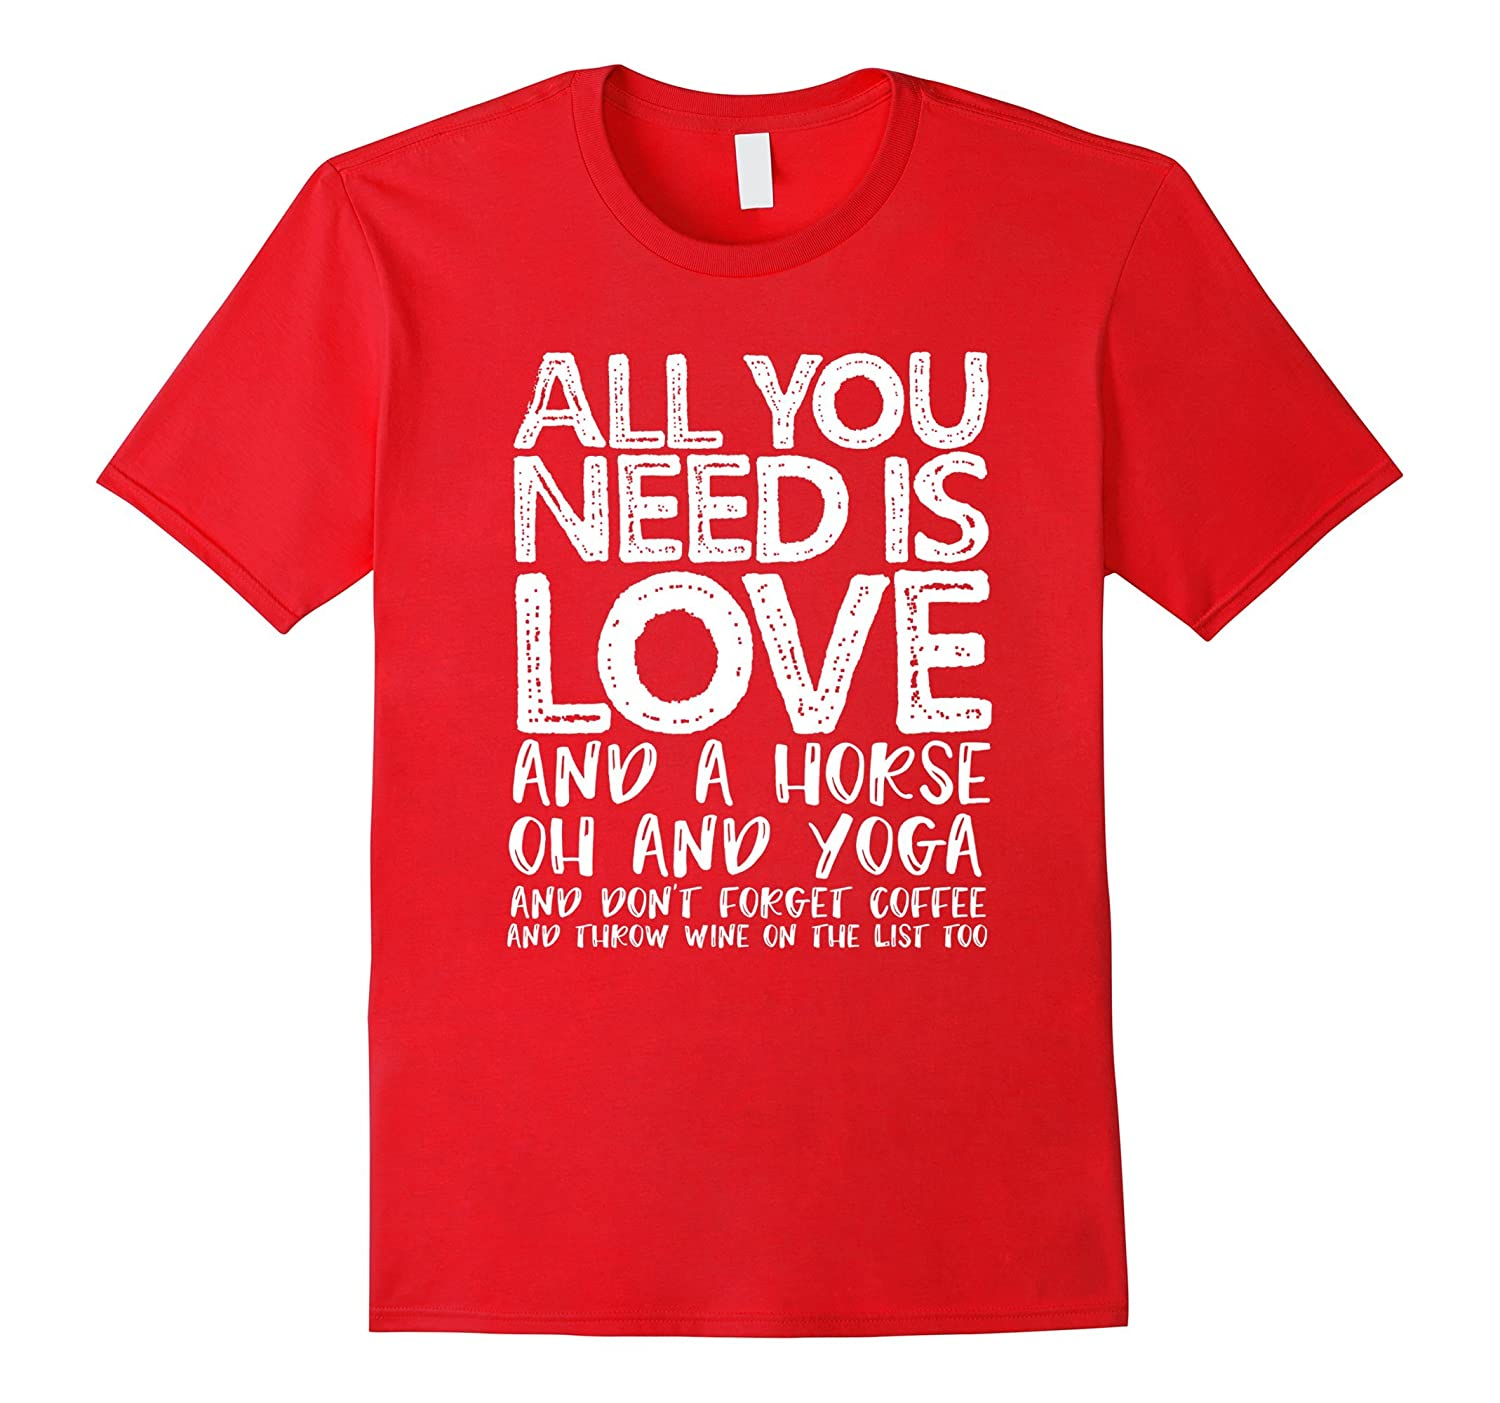 All you need is love, a horse, yoga, coffee and wine-BN